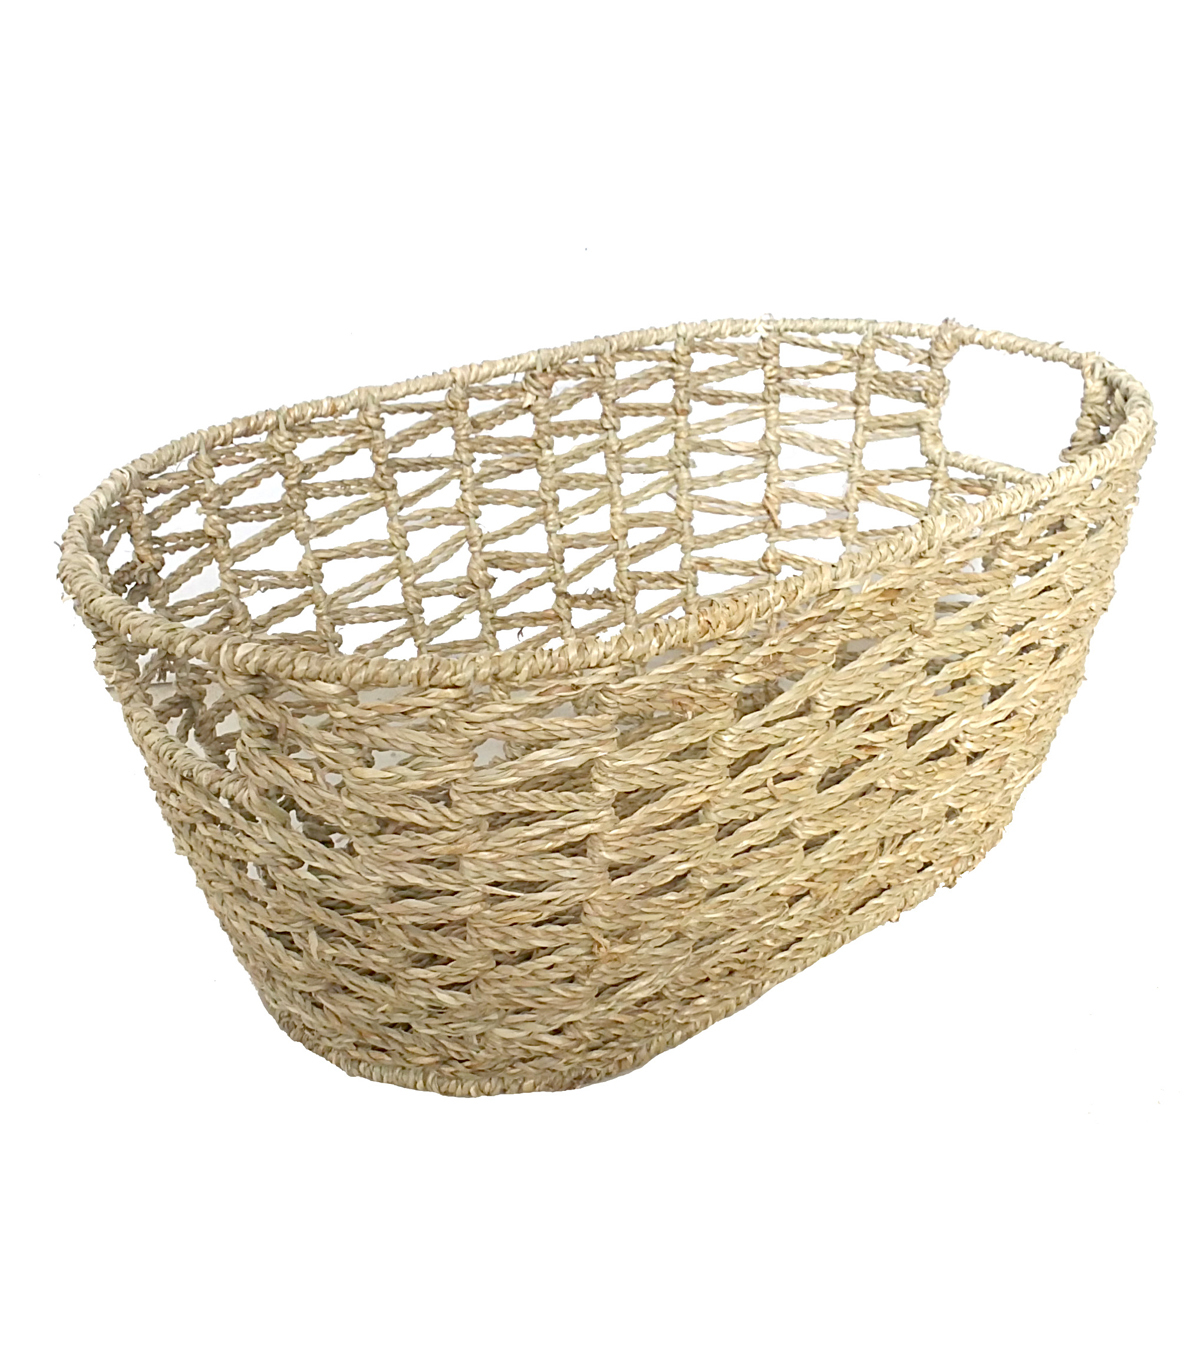 Organizing Essentials™ Oval Open Weave Seagrass Basket